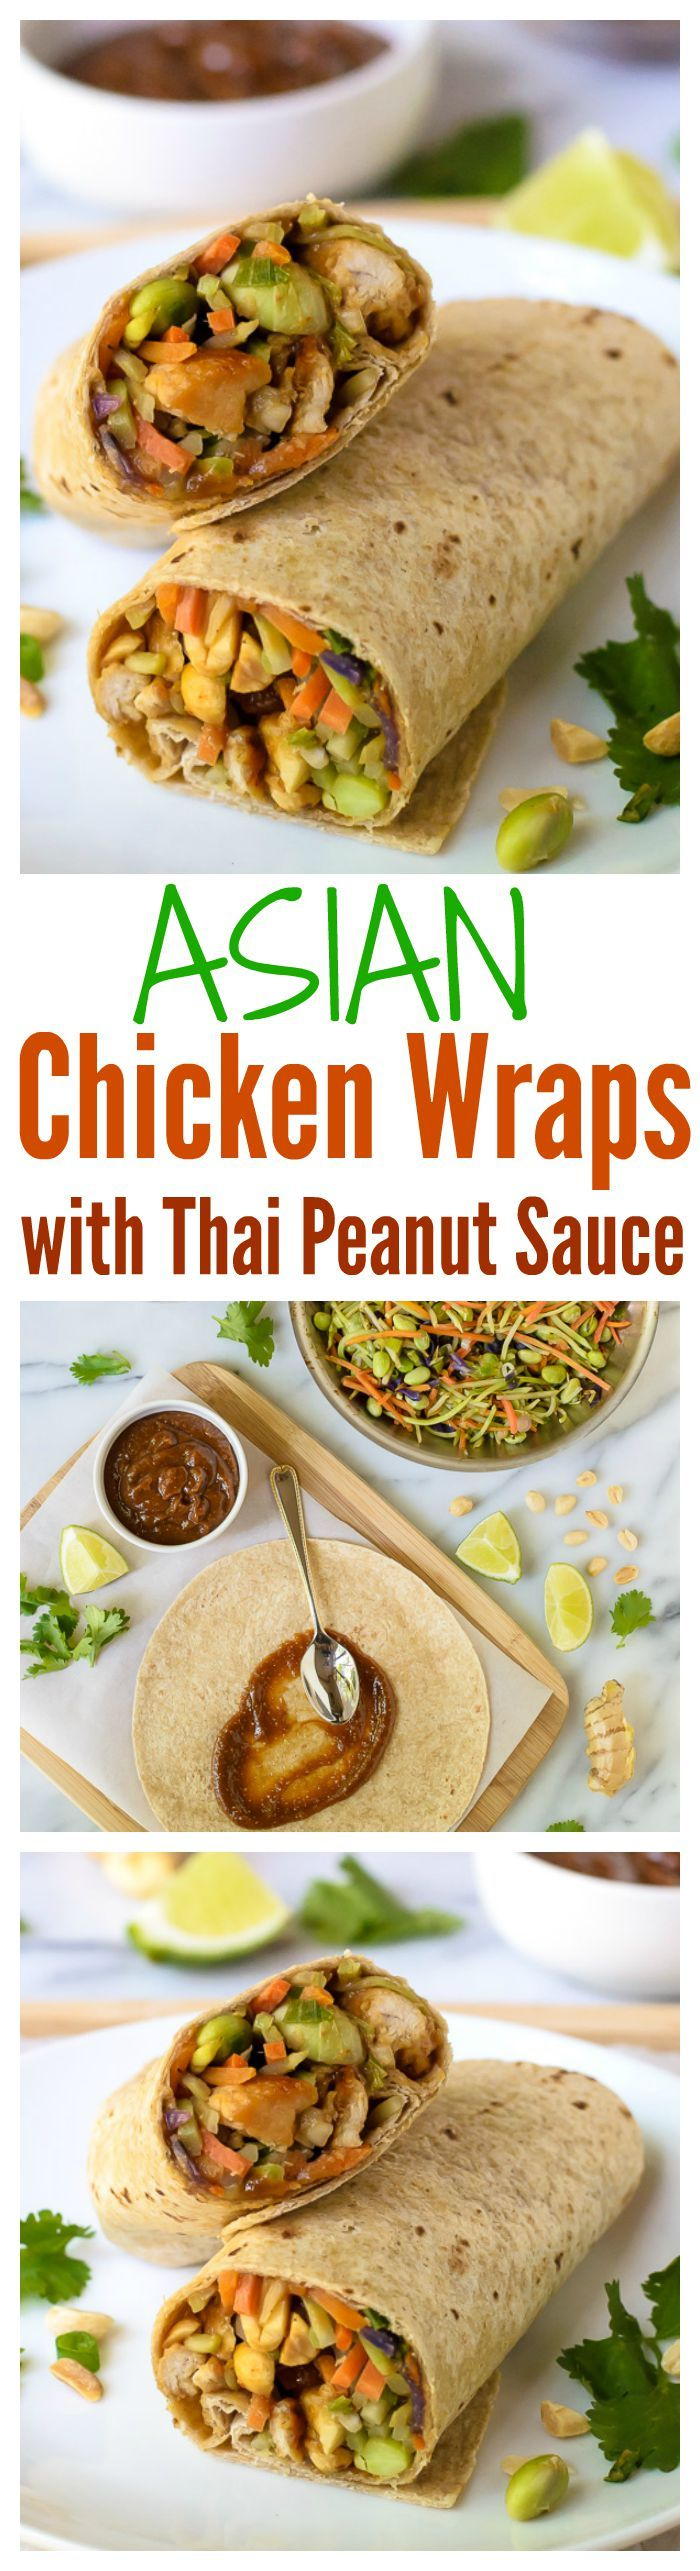 25+ best ideas about Thai Chicken Wraps on Pinterest ...